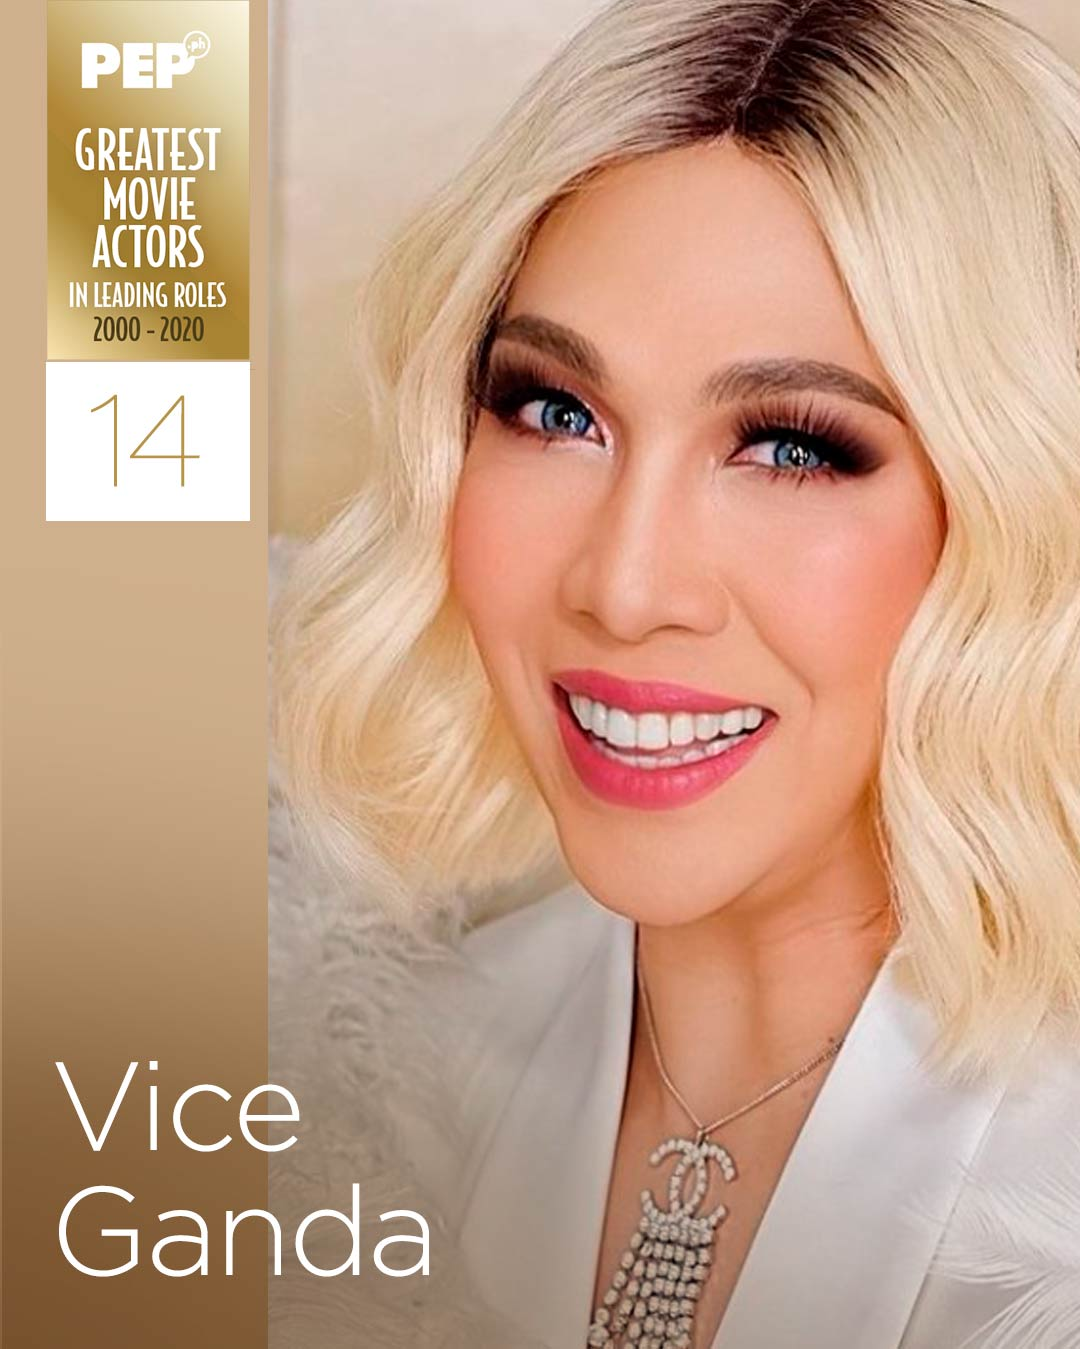 Vice Ganda, 15 Greatest Movie Actors